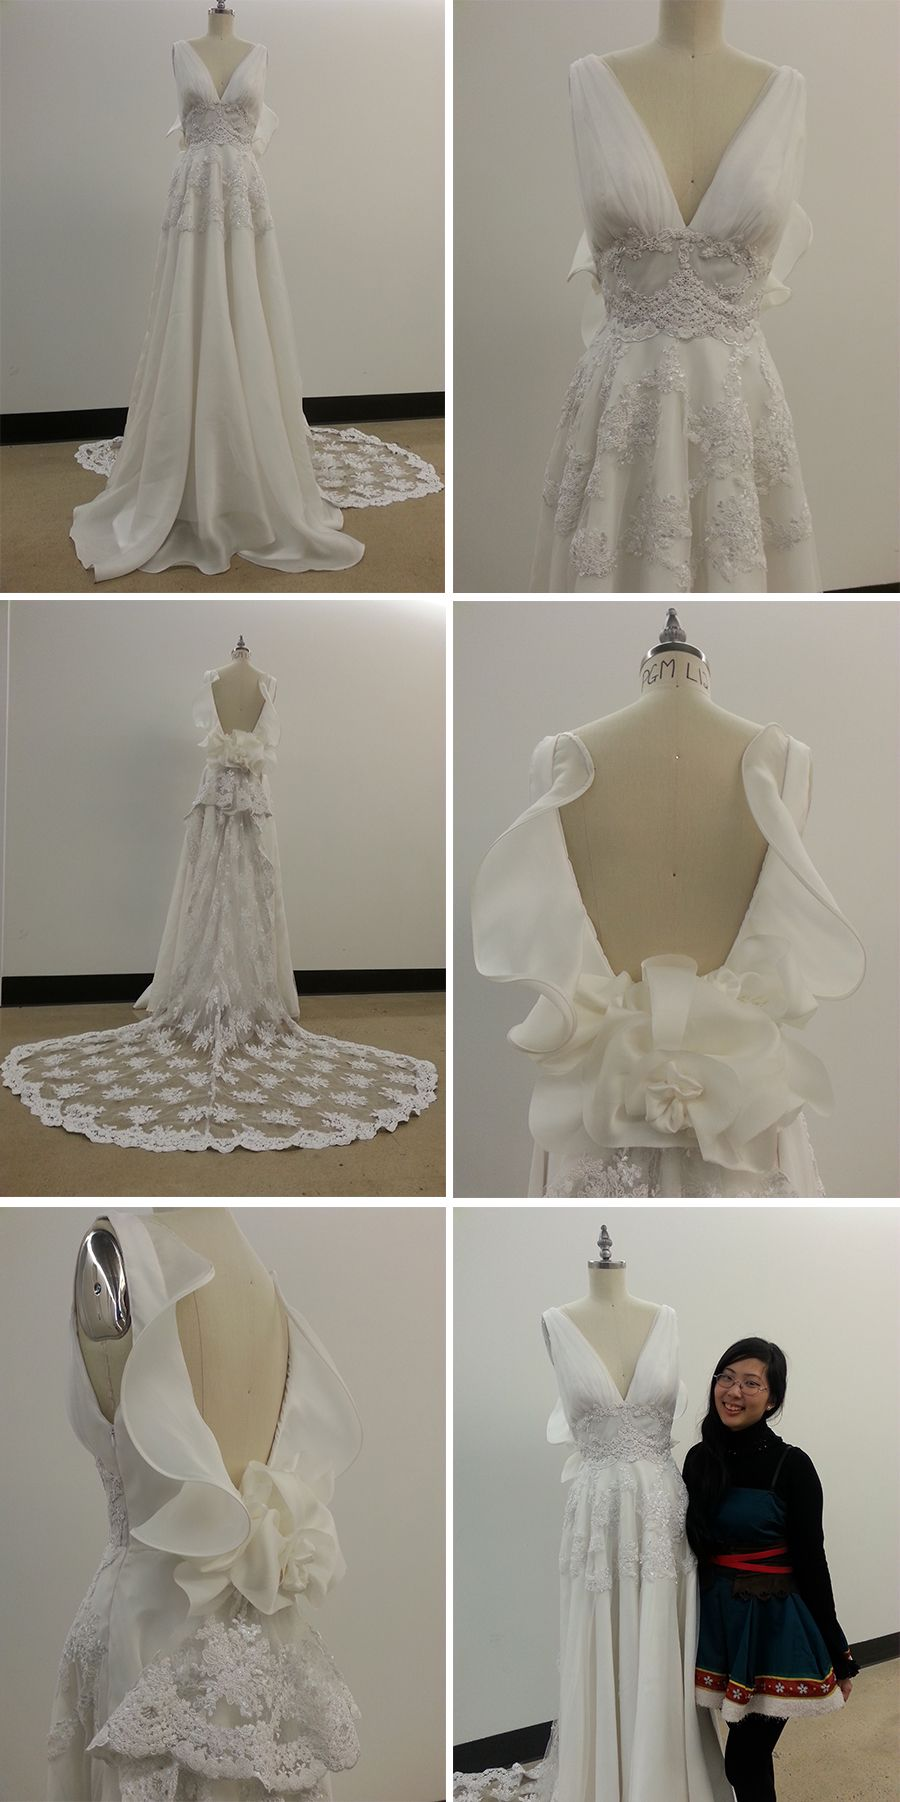 Fashion institute of technology students future bridal designers merry wu